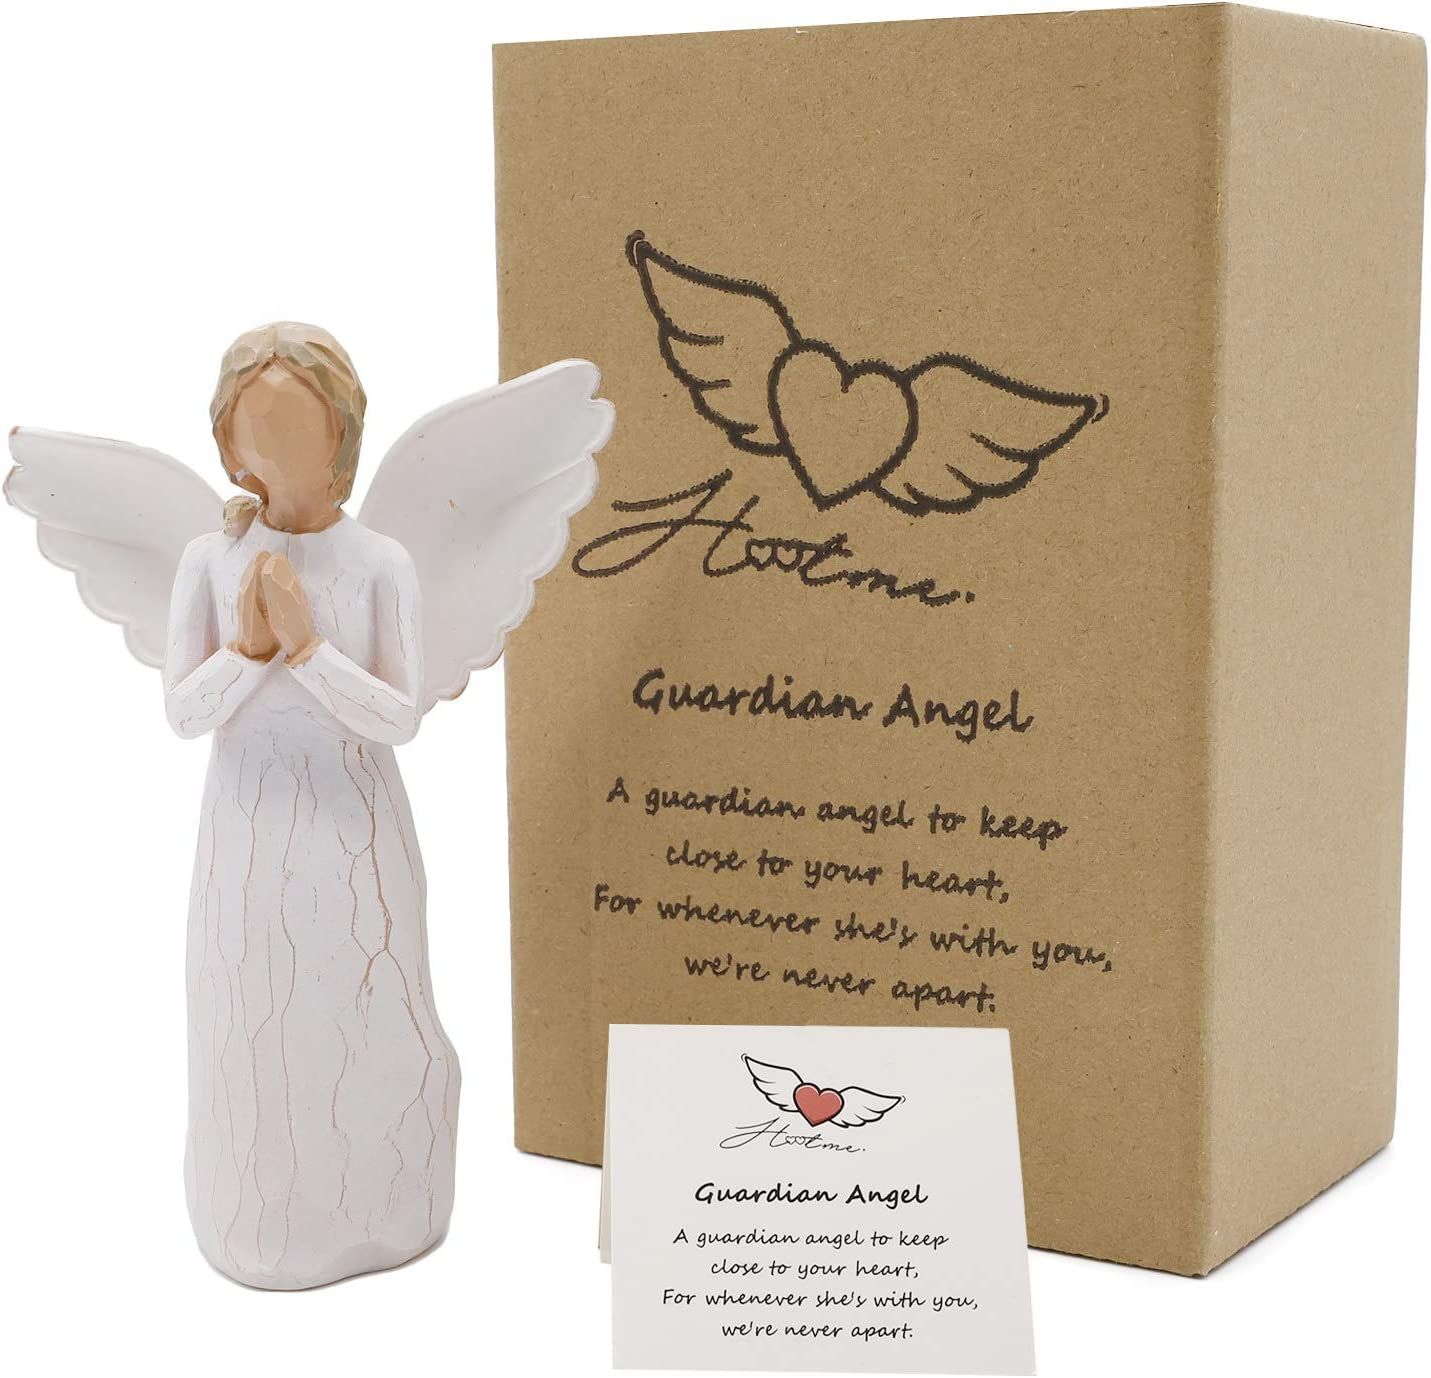 Hotme Guardian Angel Figurine,Angel of Prayer,Godmother Gifts,Angel Figurines in Memory of Loved One,Gift to Show Sympathy,Bereavement,Remembrance,Memorial,Condolence,Grieving